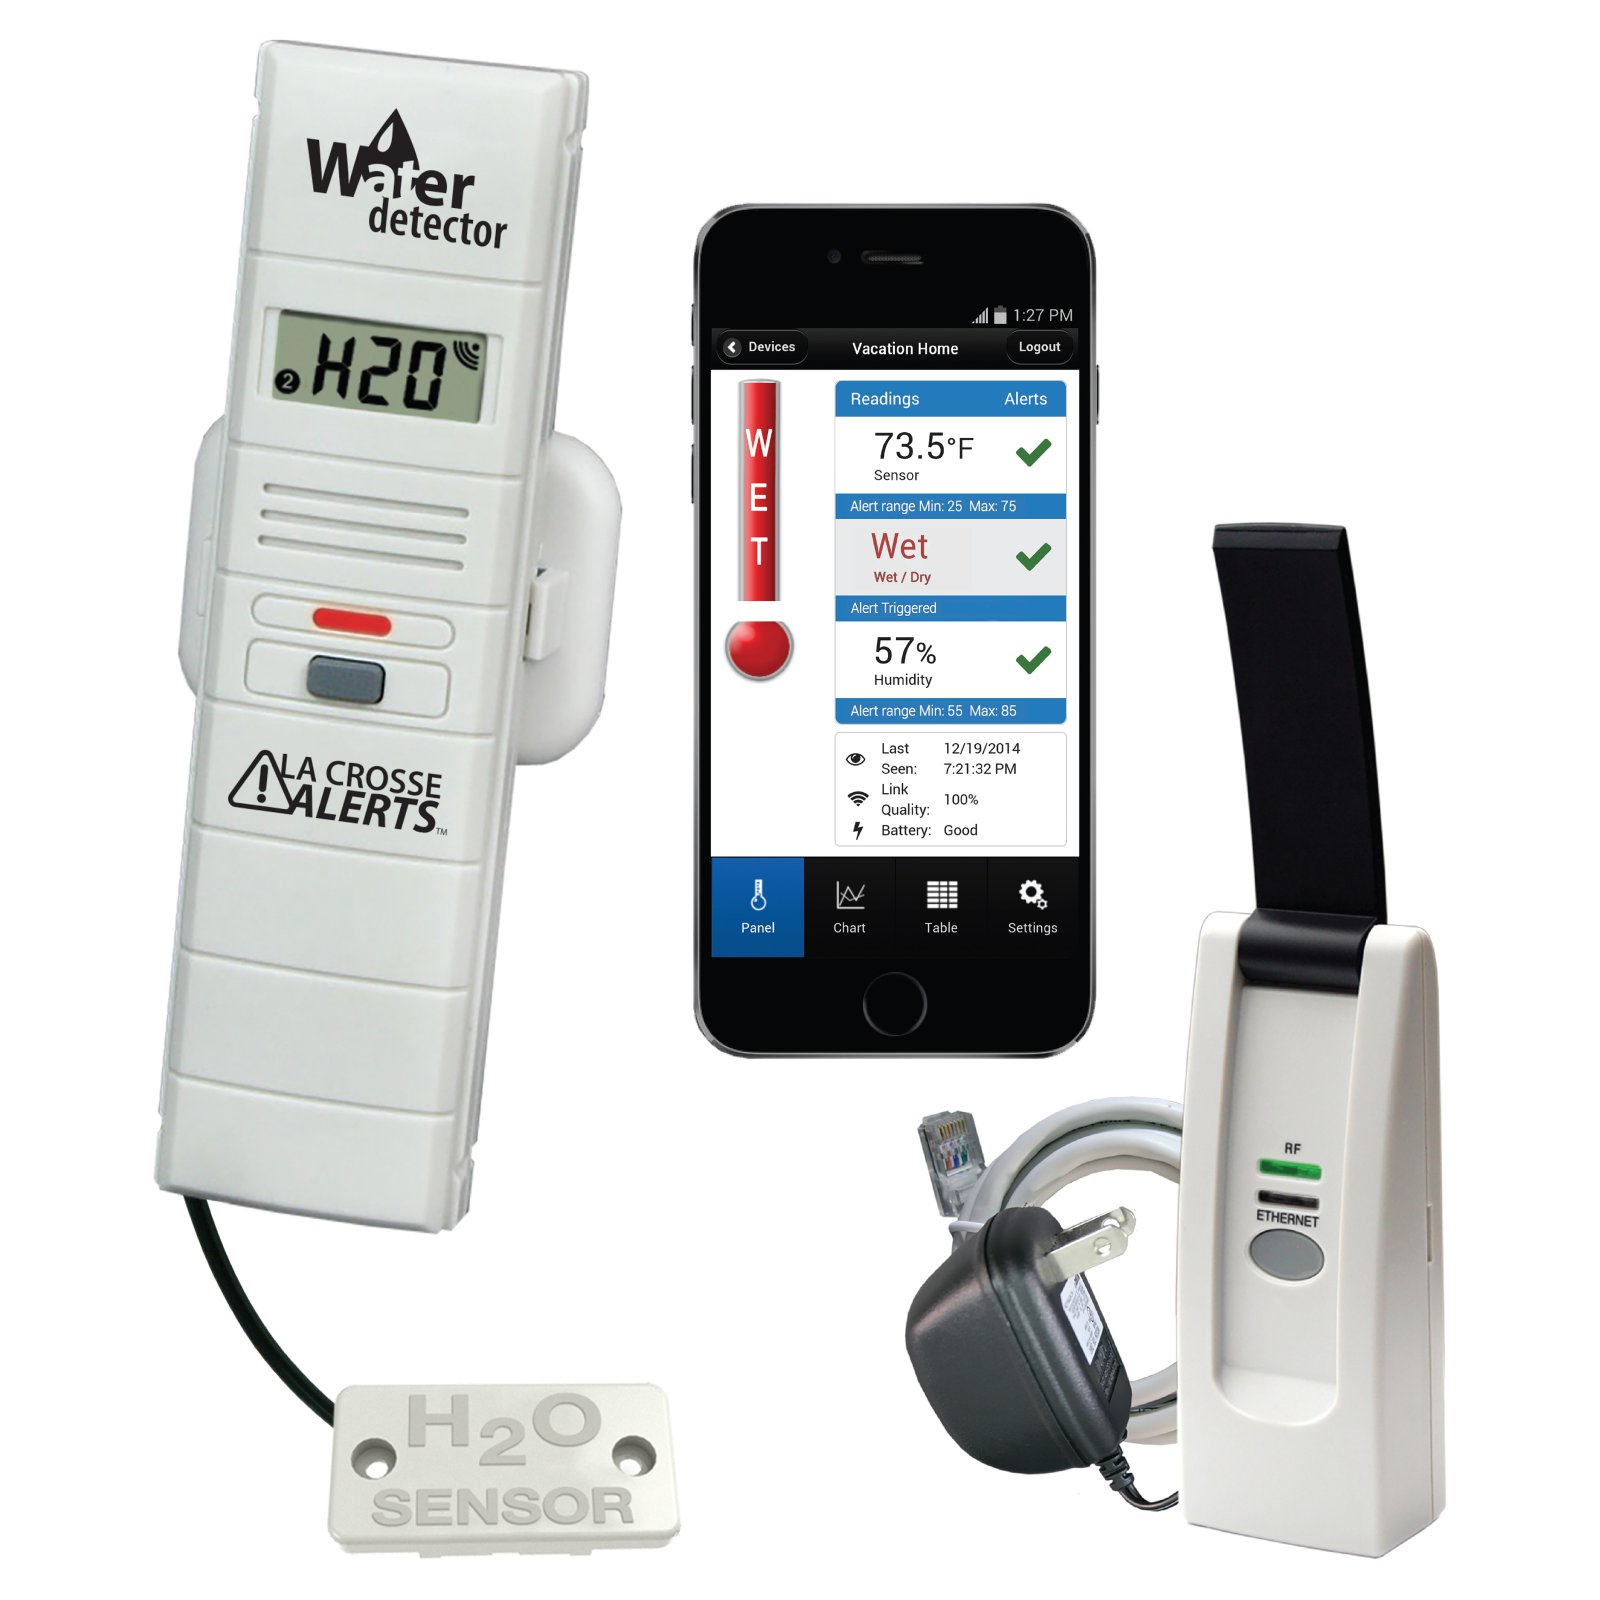 La Crosse Alerts Wireless Monitor System with Water Leak Detector Probe